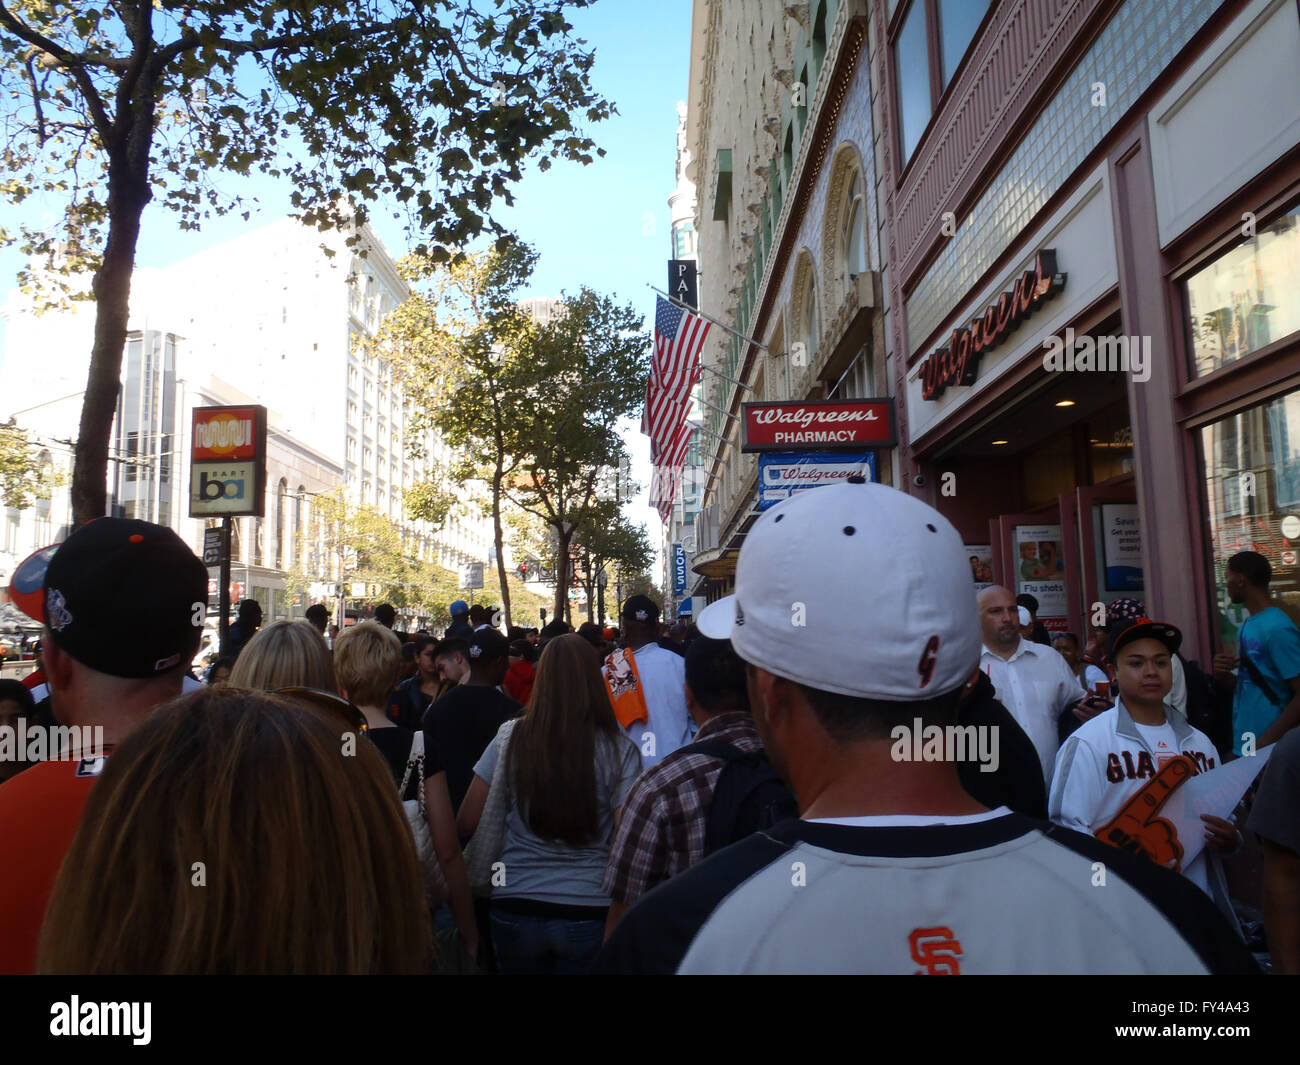 San Francisco Ca 3 November Crowd Of Giants Fans Spaziergang In